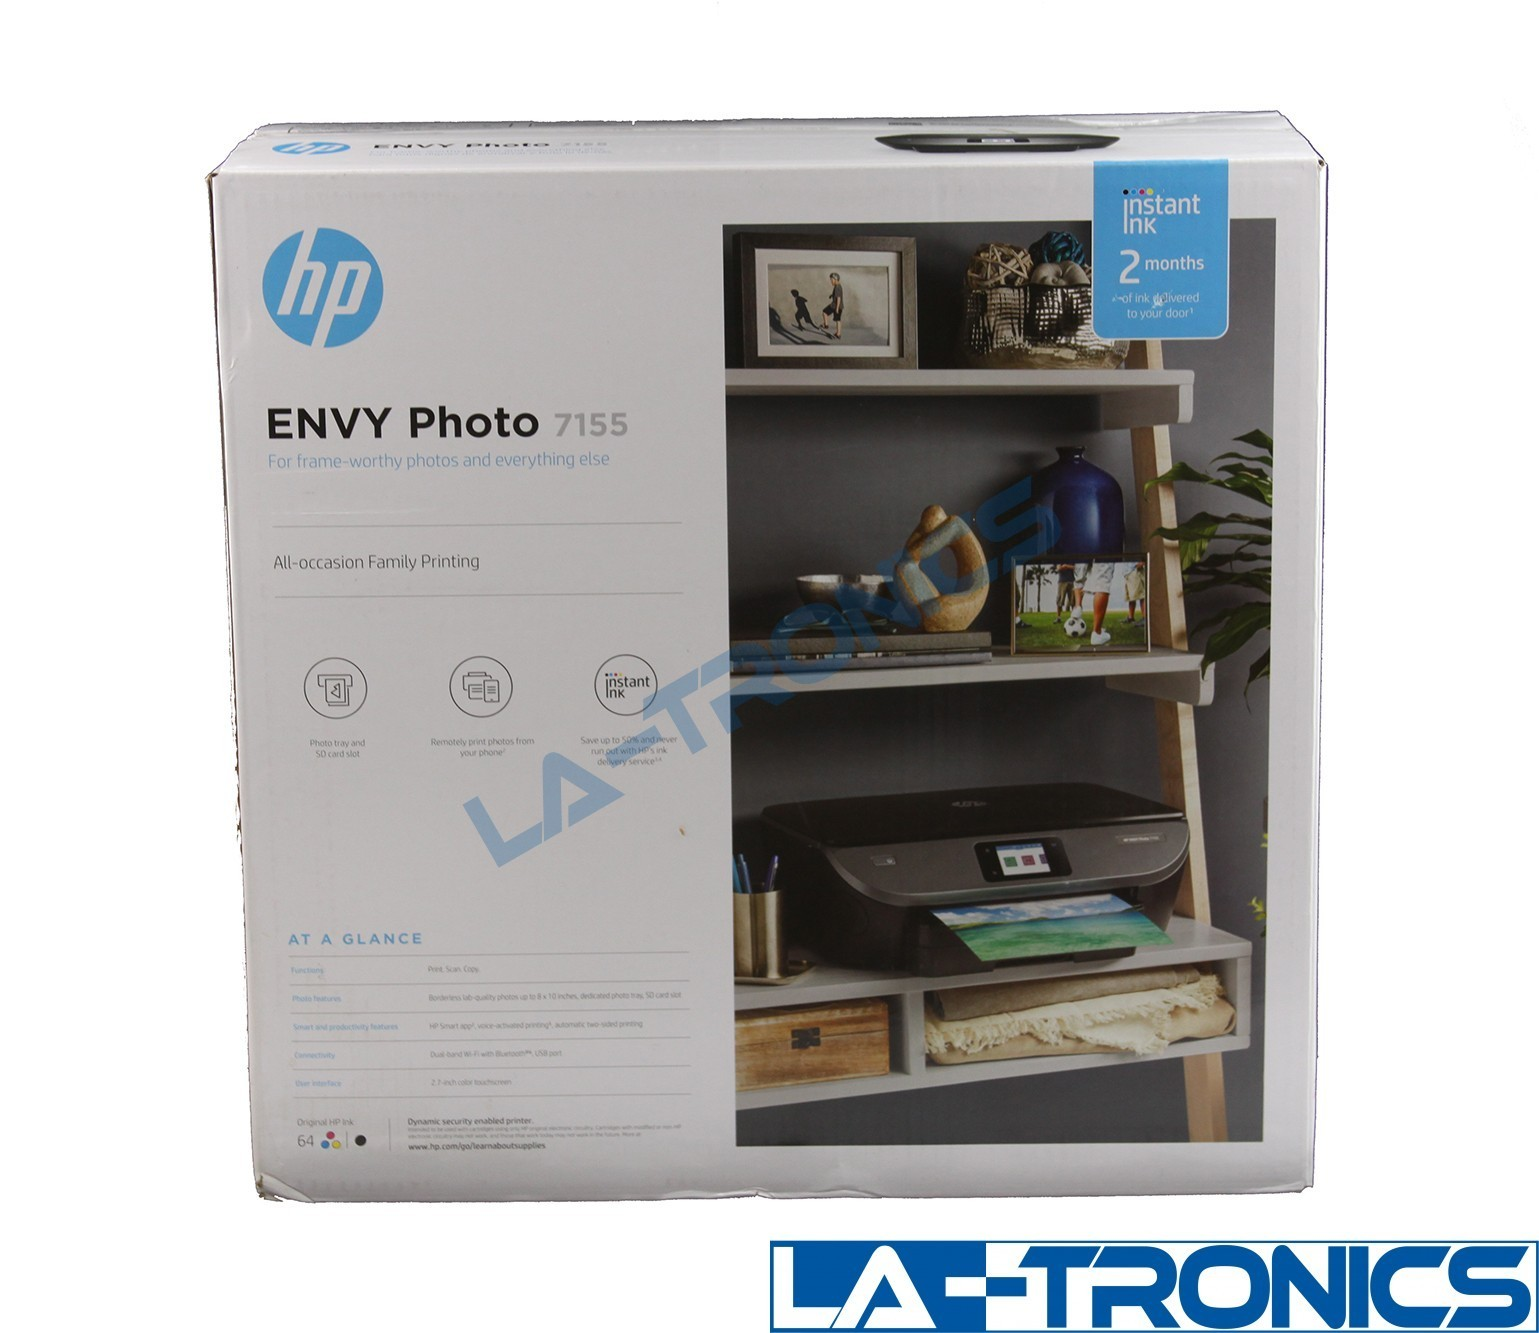 NEW HP ENVY Photo 7155 All in One Photo Printer with Wireless Printing